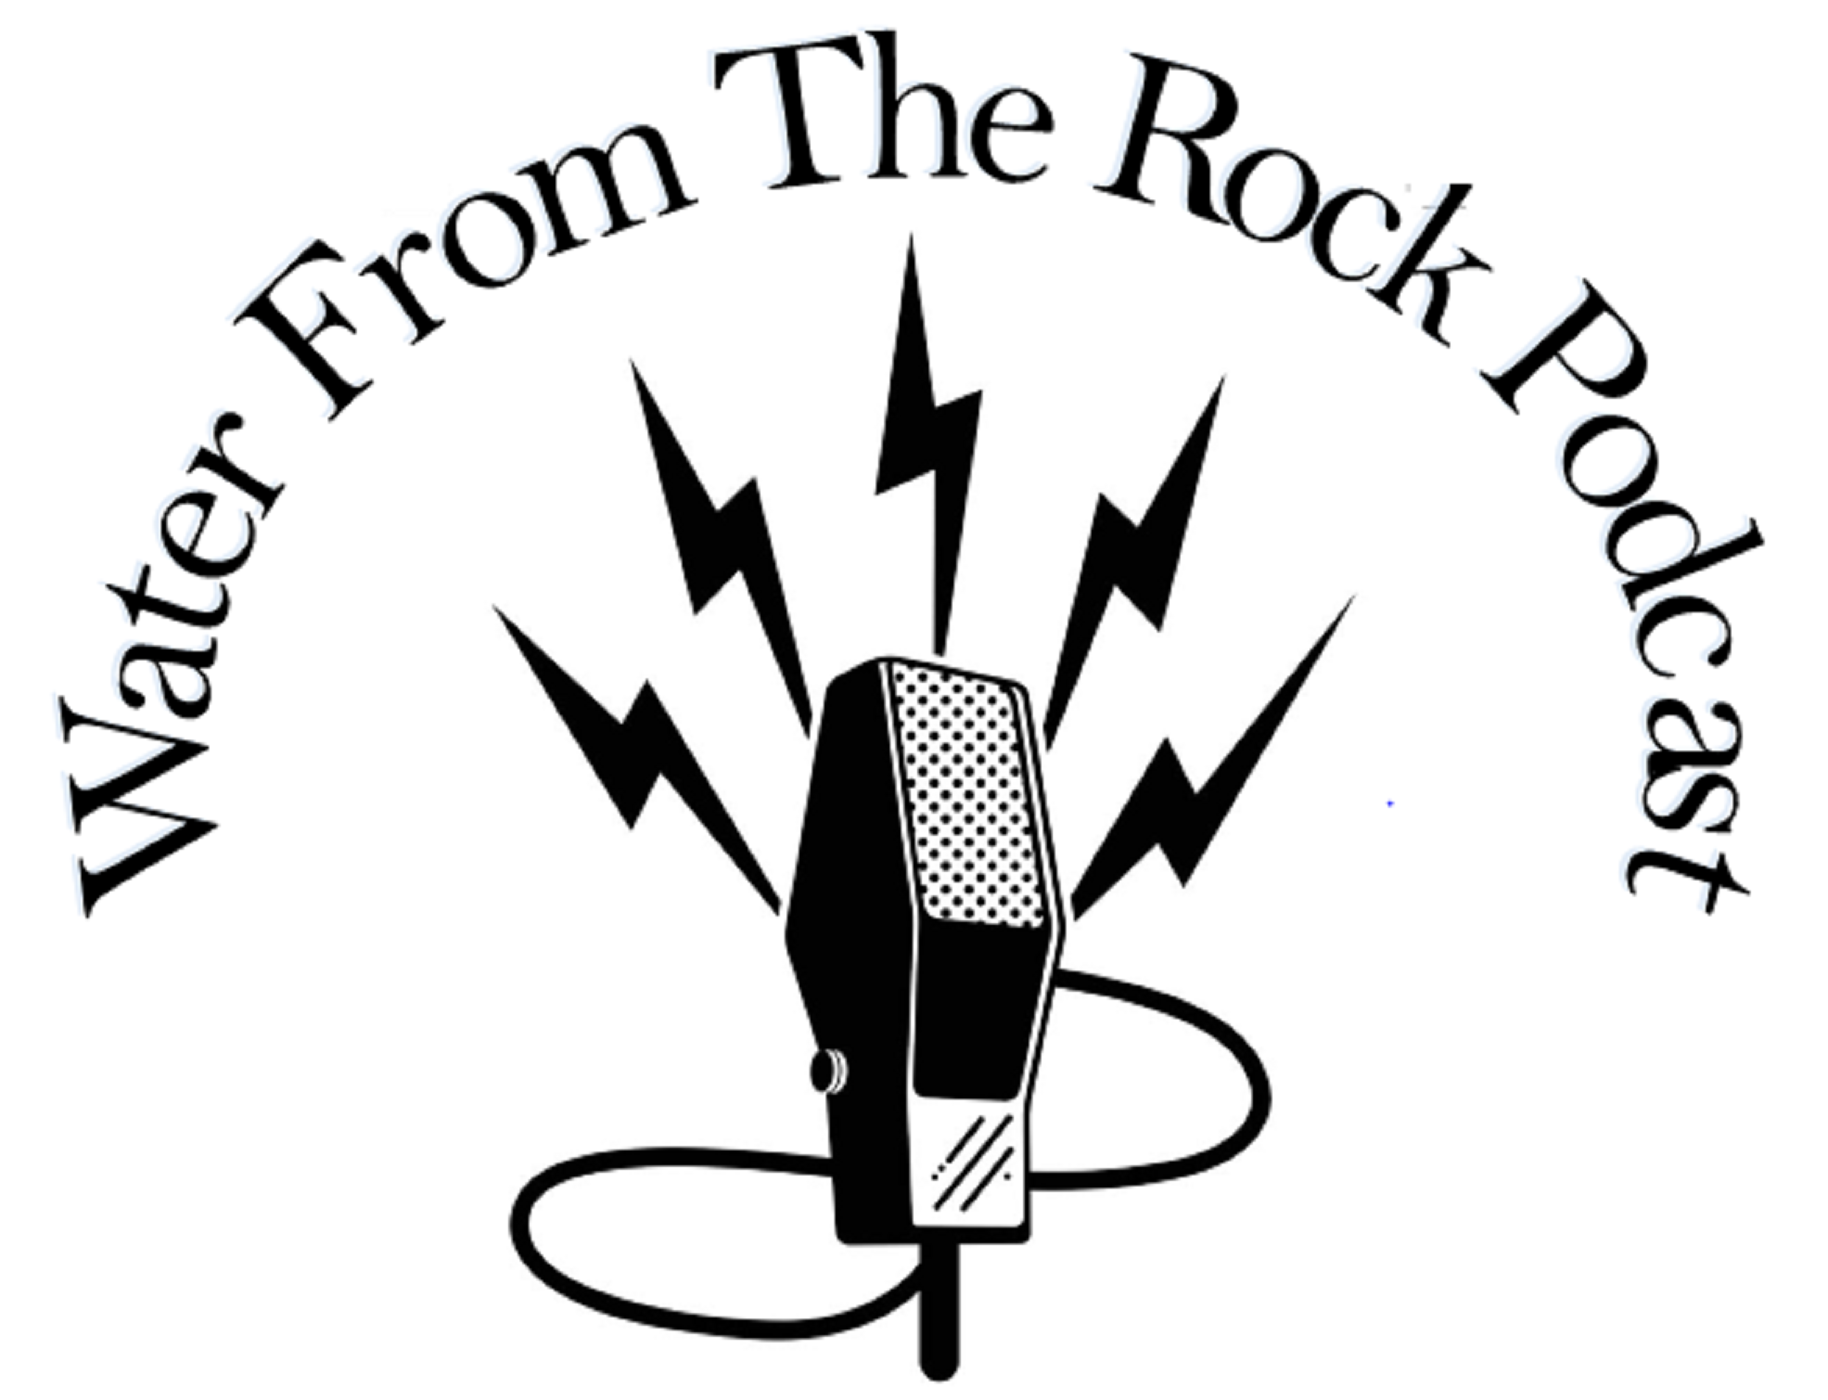 The Water From The Rock Podcast